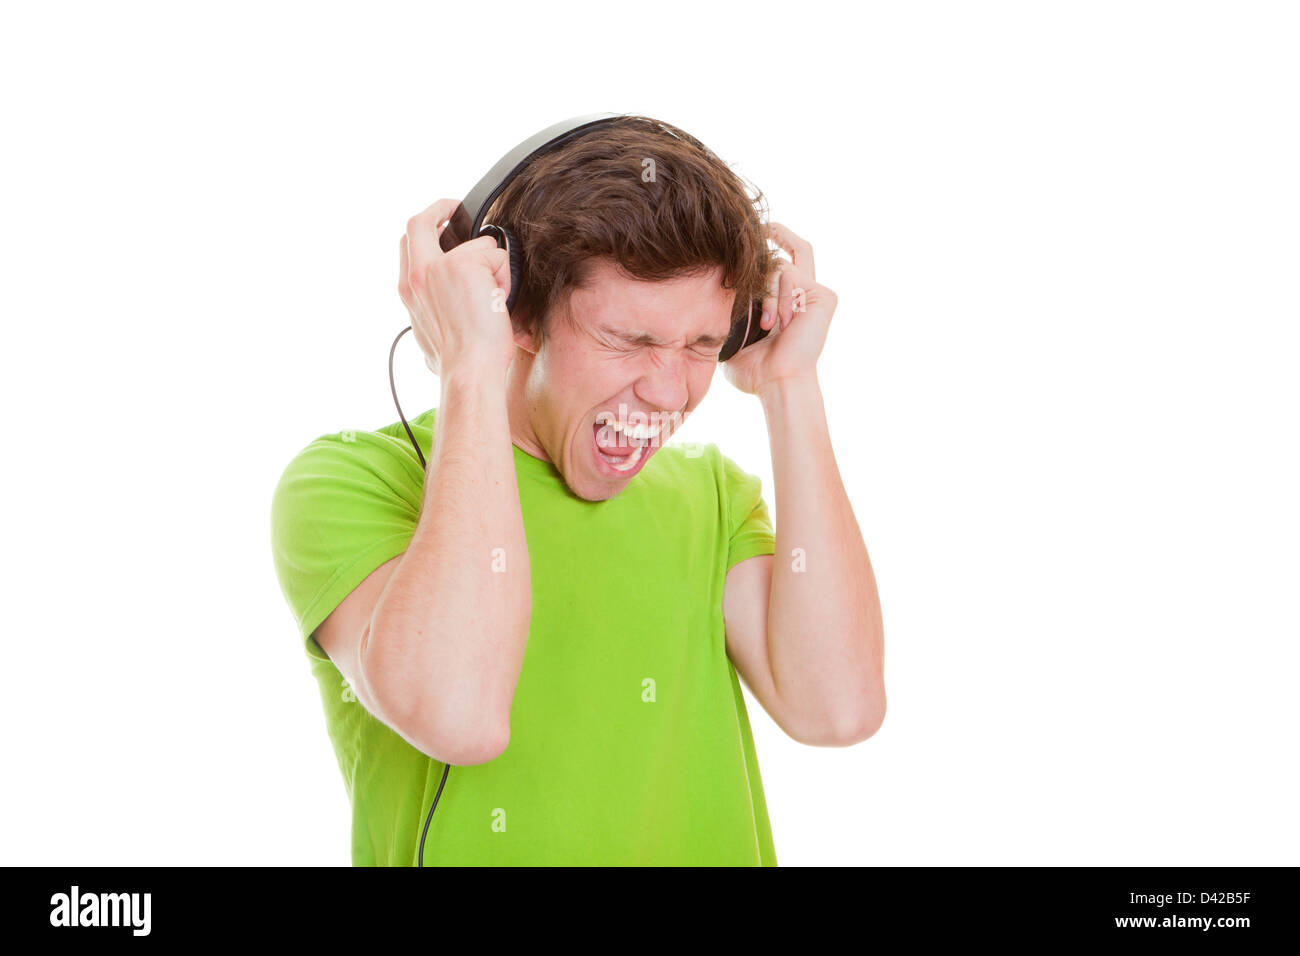 teen singing, listening to music with headphones Stock Photo